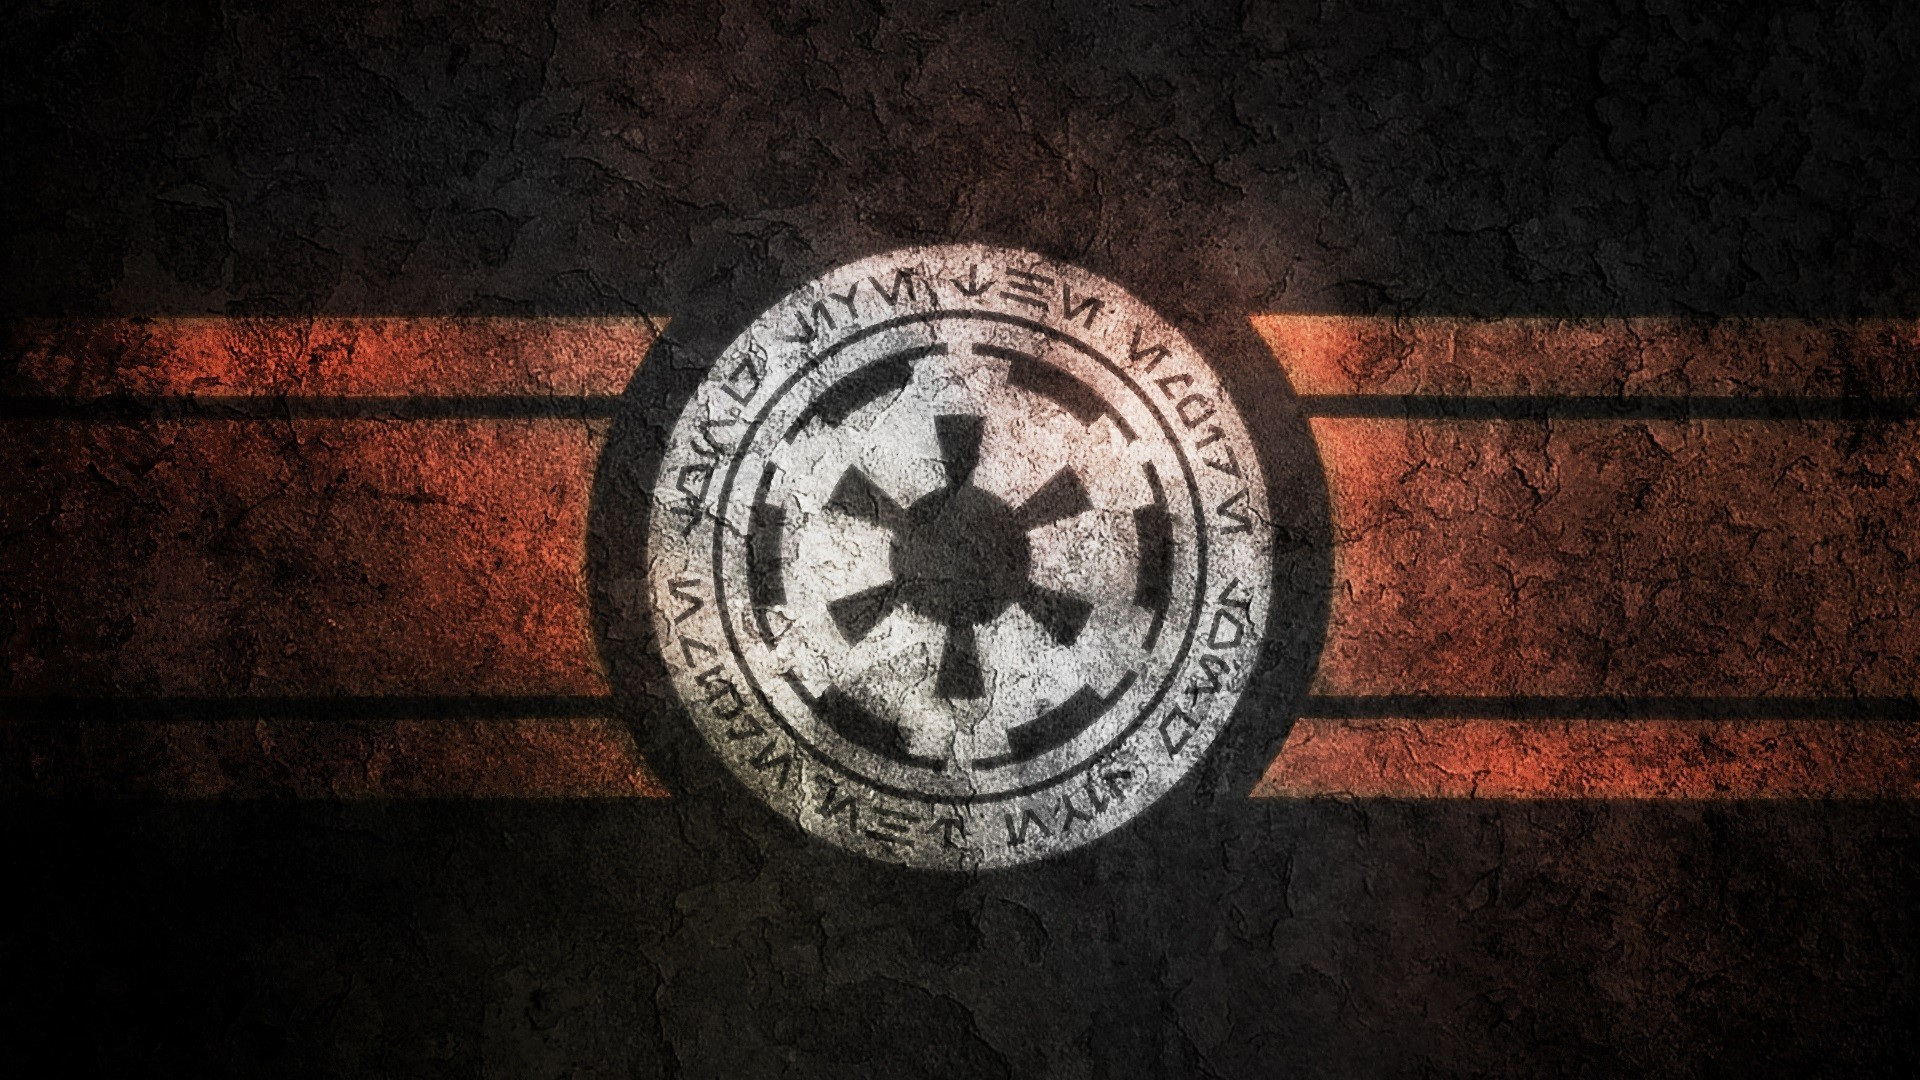 1920x1080 High Resolution Star Wars Logo Background Wallpaper Full Size .